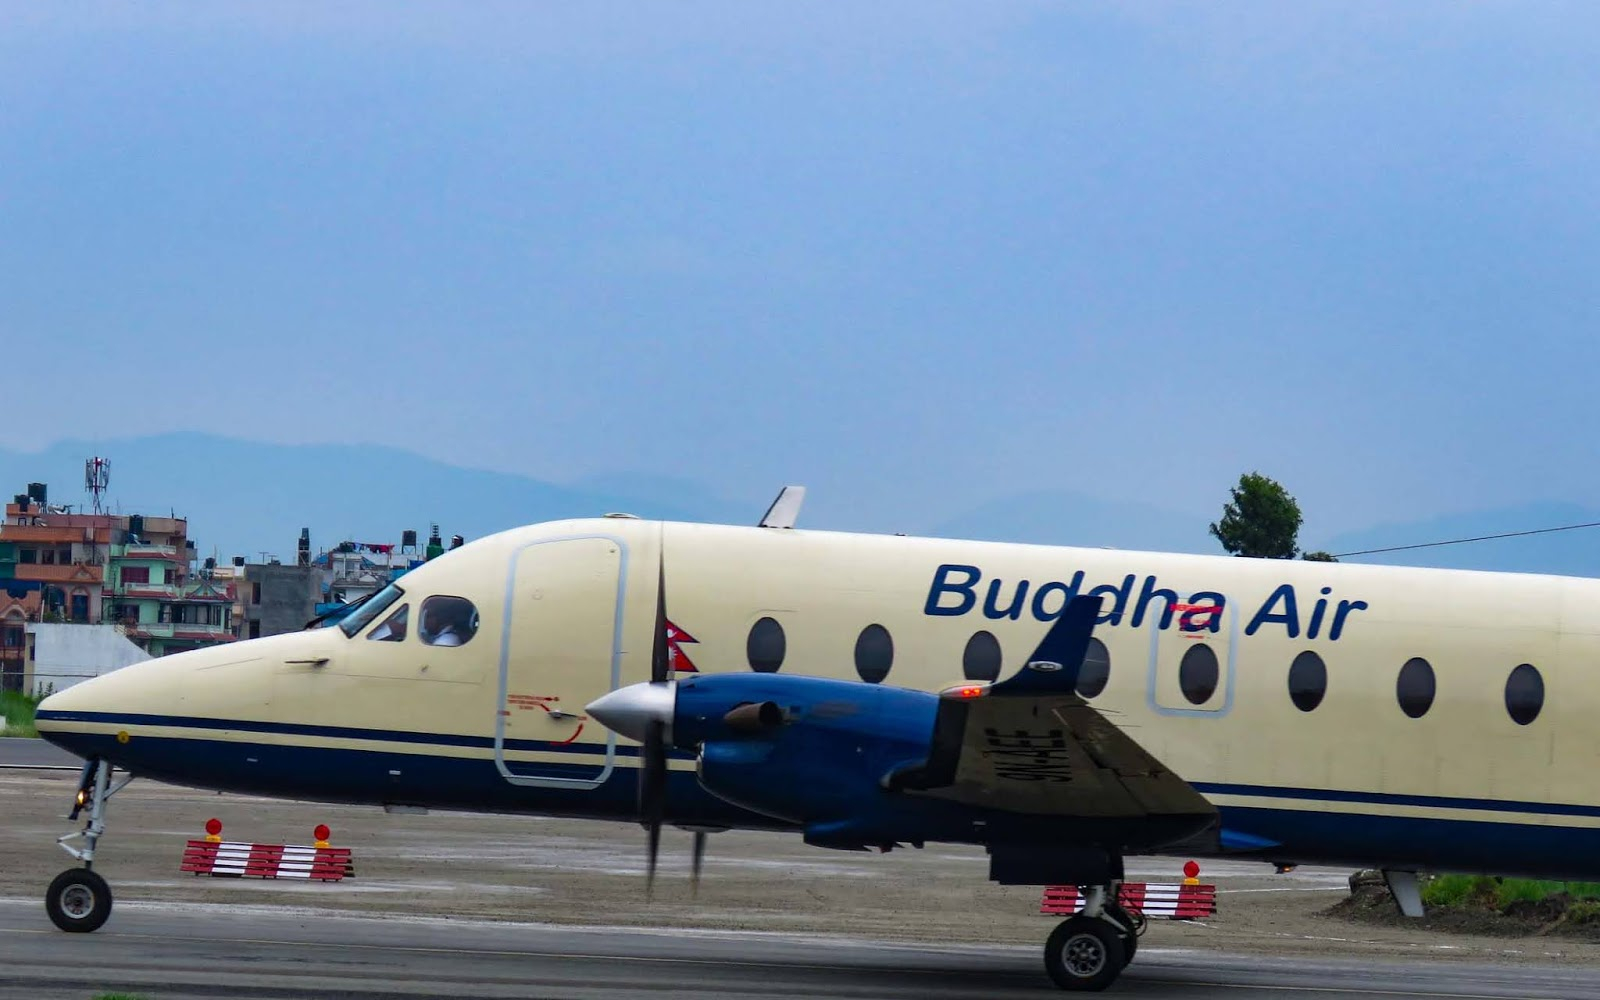 Buddha air aircraft